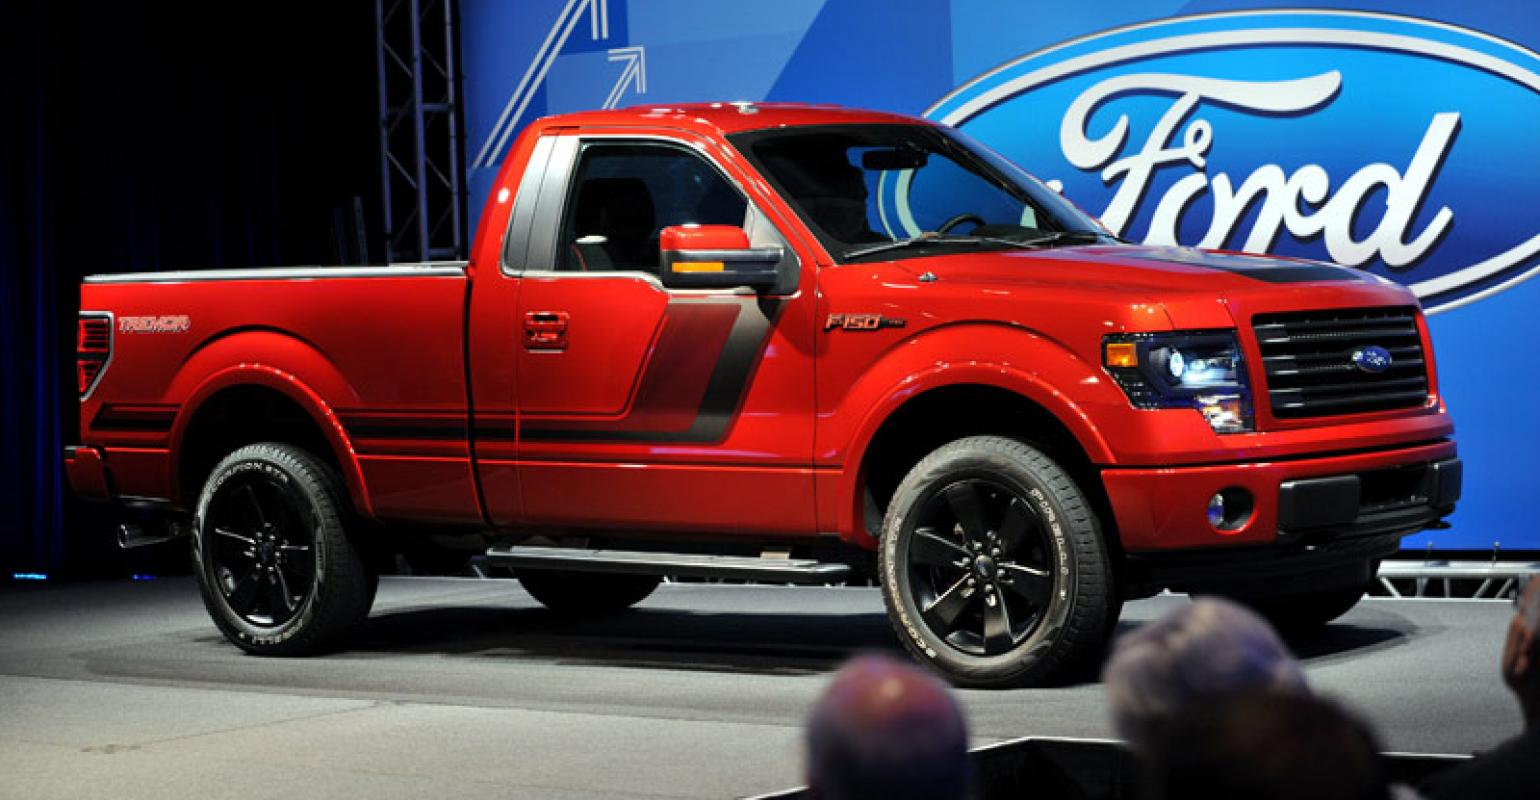 Ford Truck Enthusiast >> Ford F 150 Tremor Aimed At Street Truck Enthusiasts Wardsauto